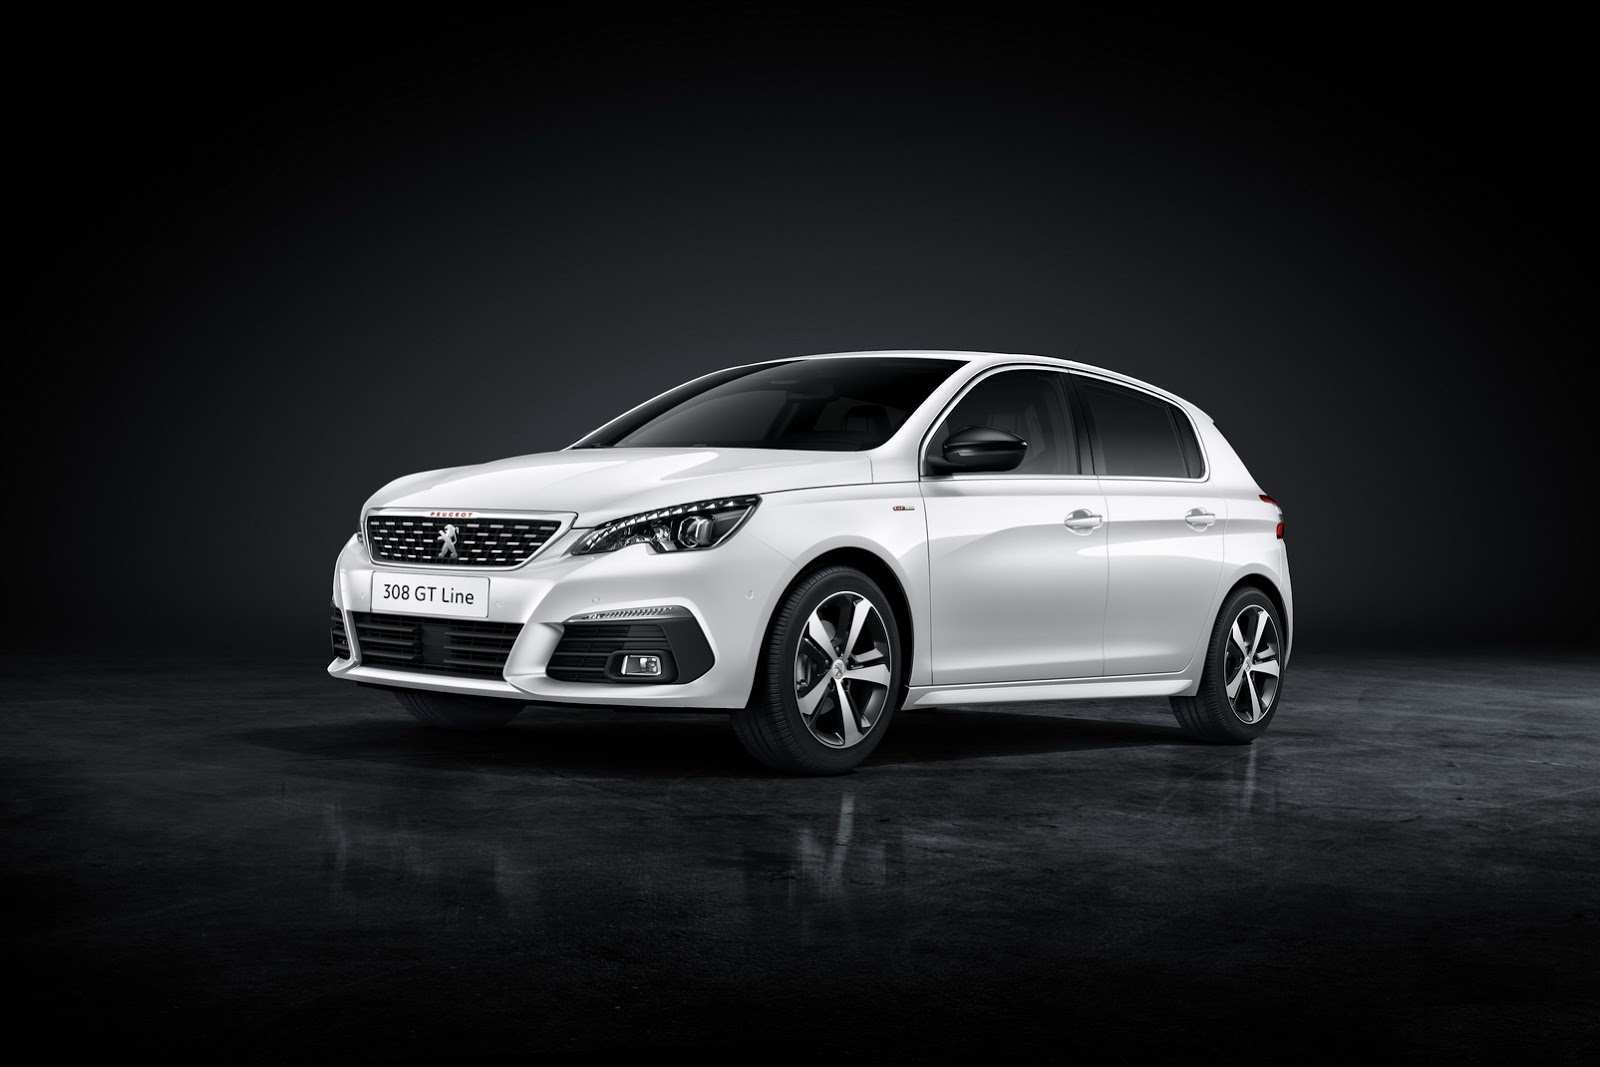 62 New 2019 Peugeot 308 Performance